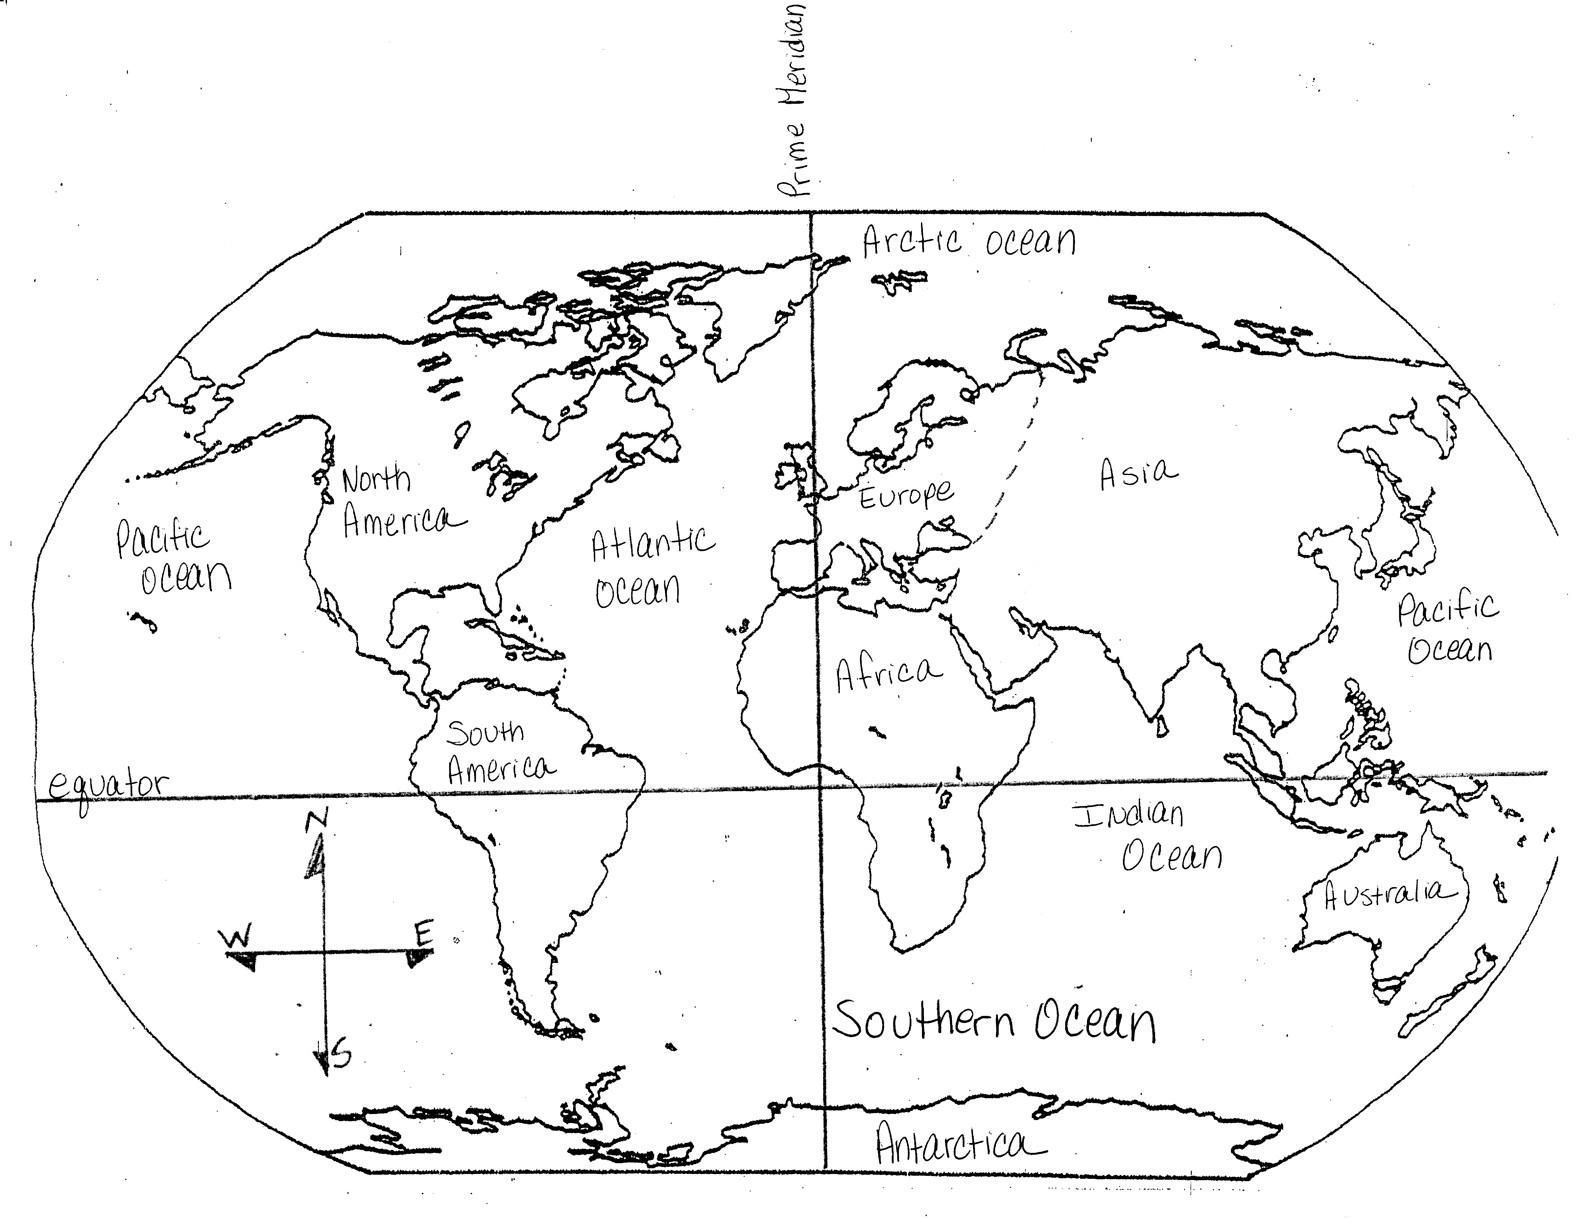 Blank Maps Of Continents And Oceans And Travel Information - Free Printable Map Of Continents And Oceans